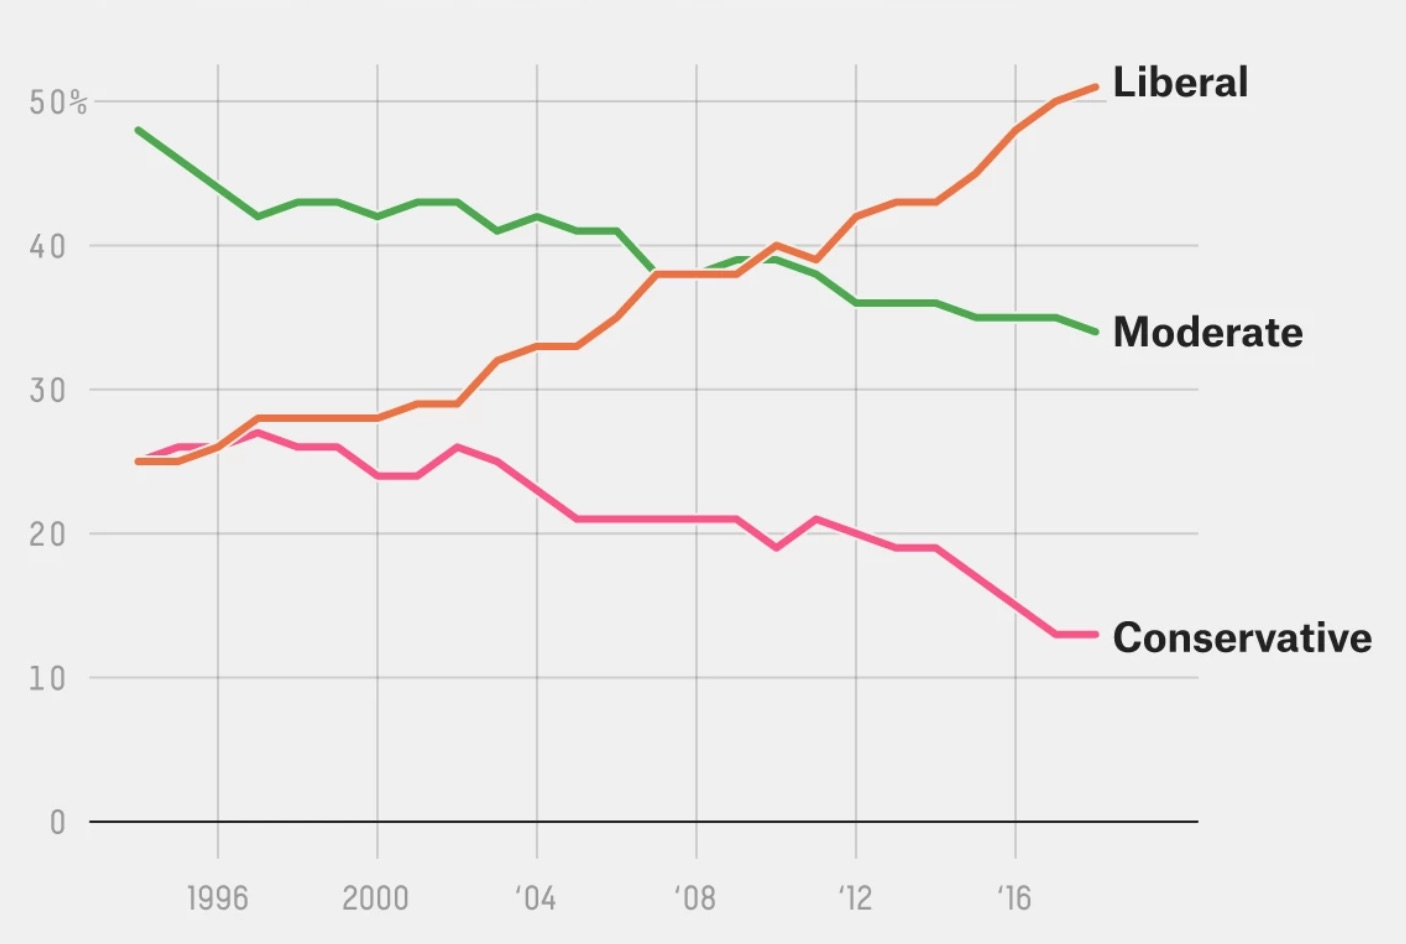 In the 1990s,  about 50% of Democrats identified as Moderate, while about 25% each identified as Liberal and Conservative. Today, a little over 50% identify as Liberal, while 35% identify as Moderate and only 15% identify as Conservative